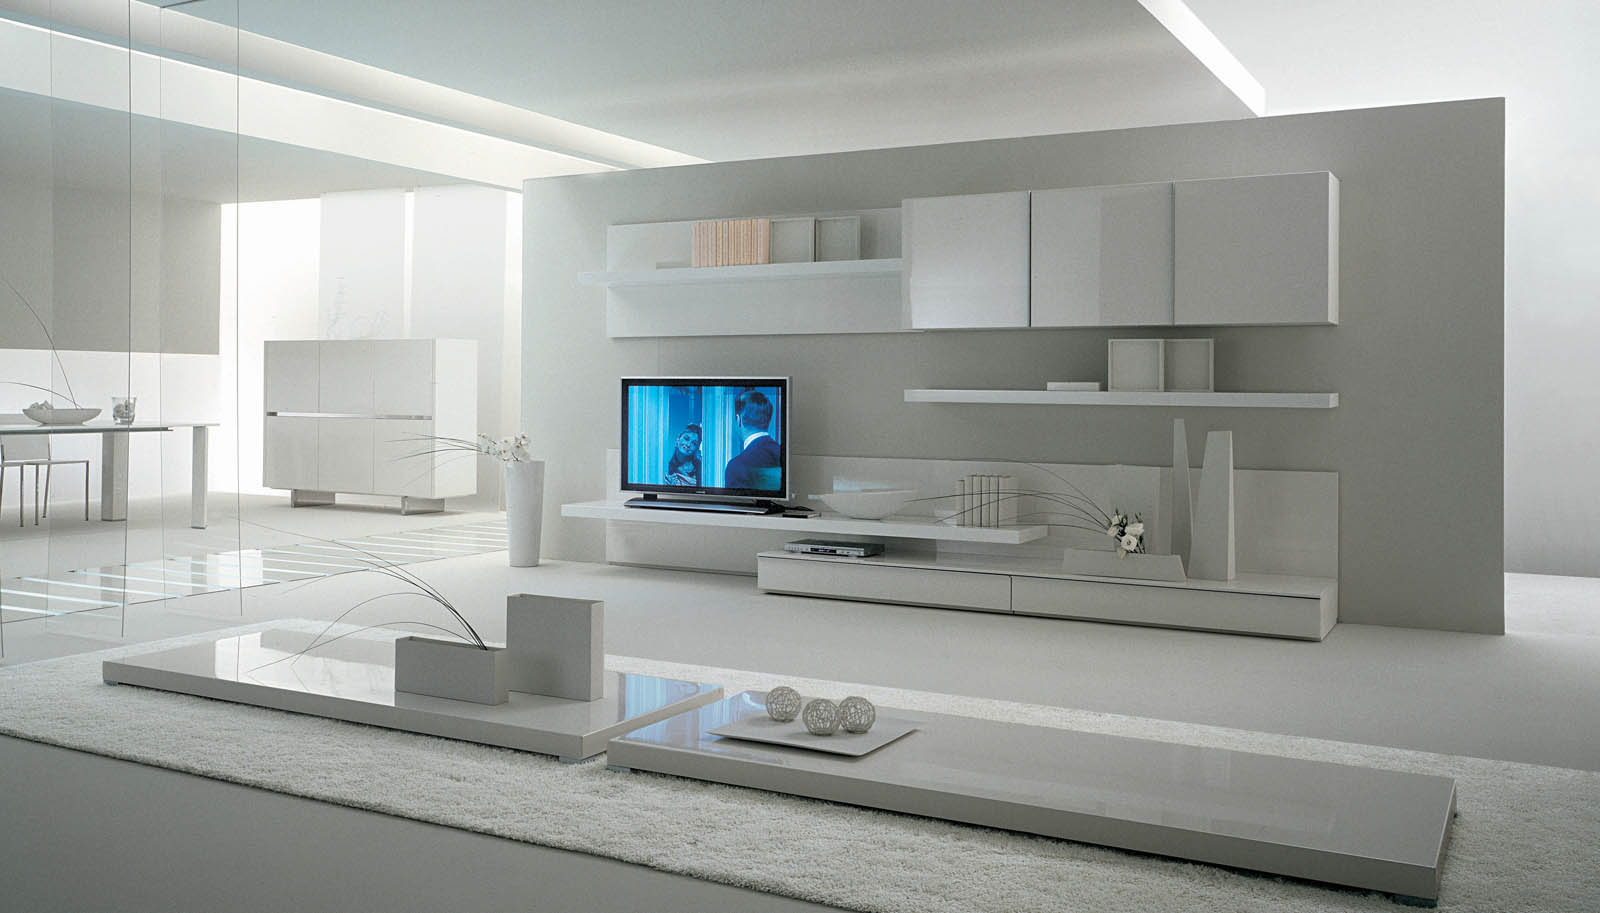 Widely Used Minimalist Living Room With Modern Storage Wall Unit Fits In White Inside Tv Units With Storage (View 15 of 20)